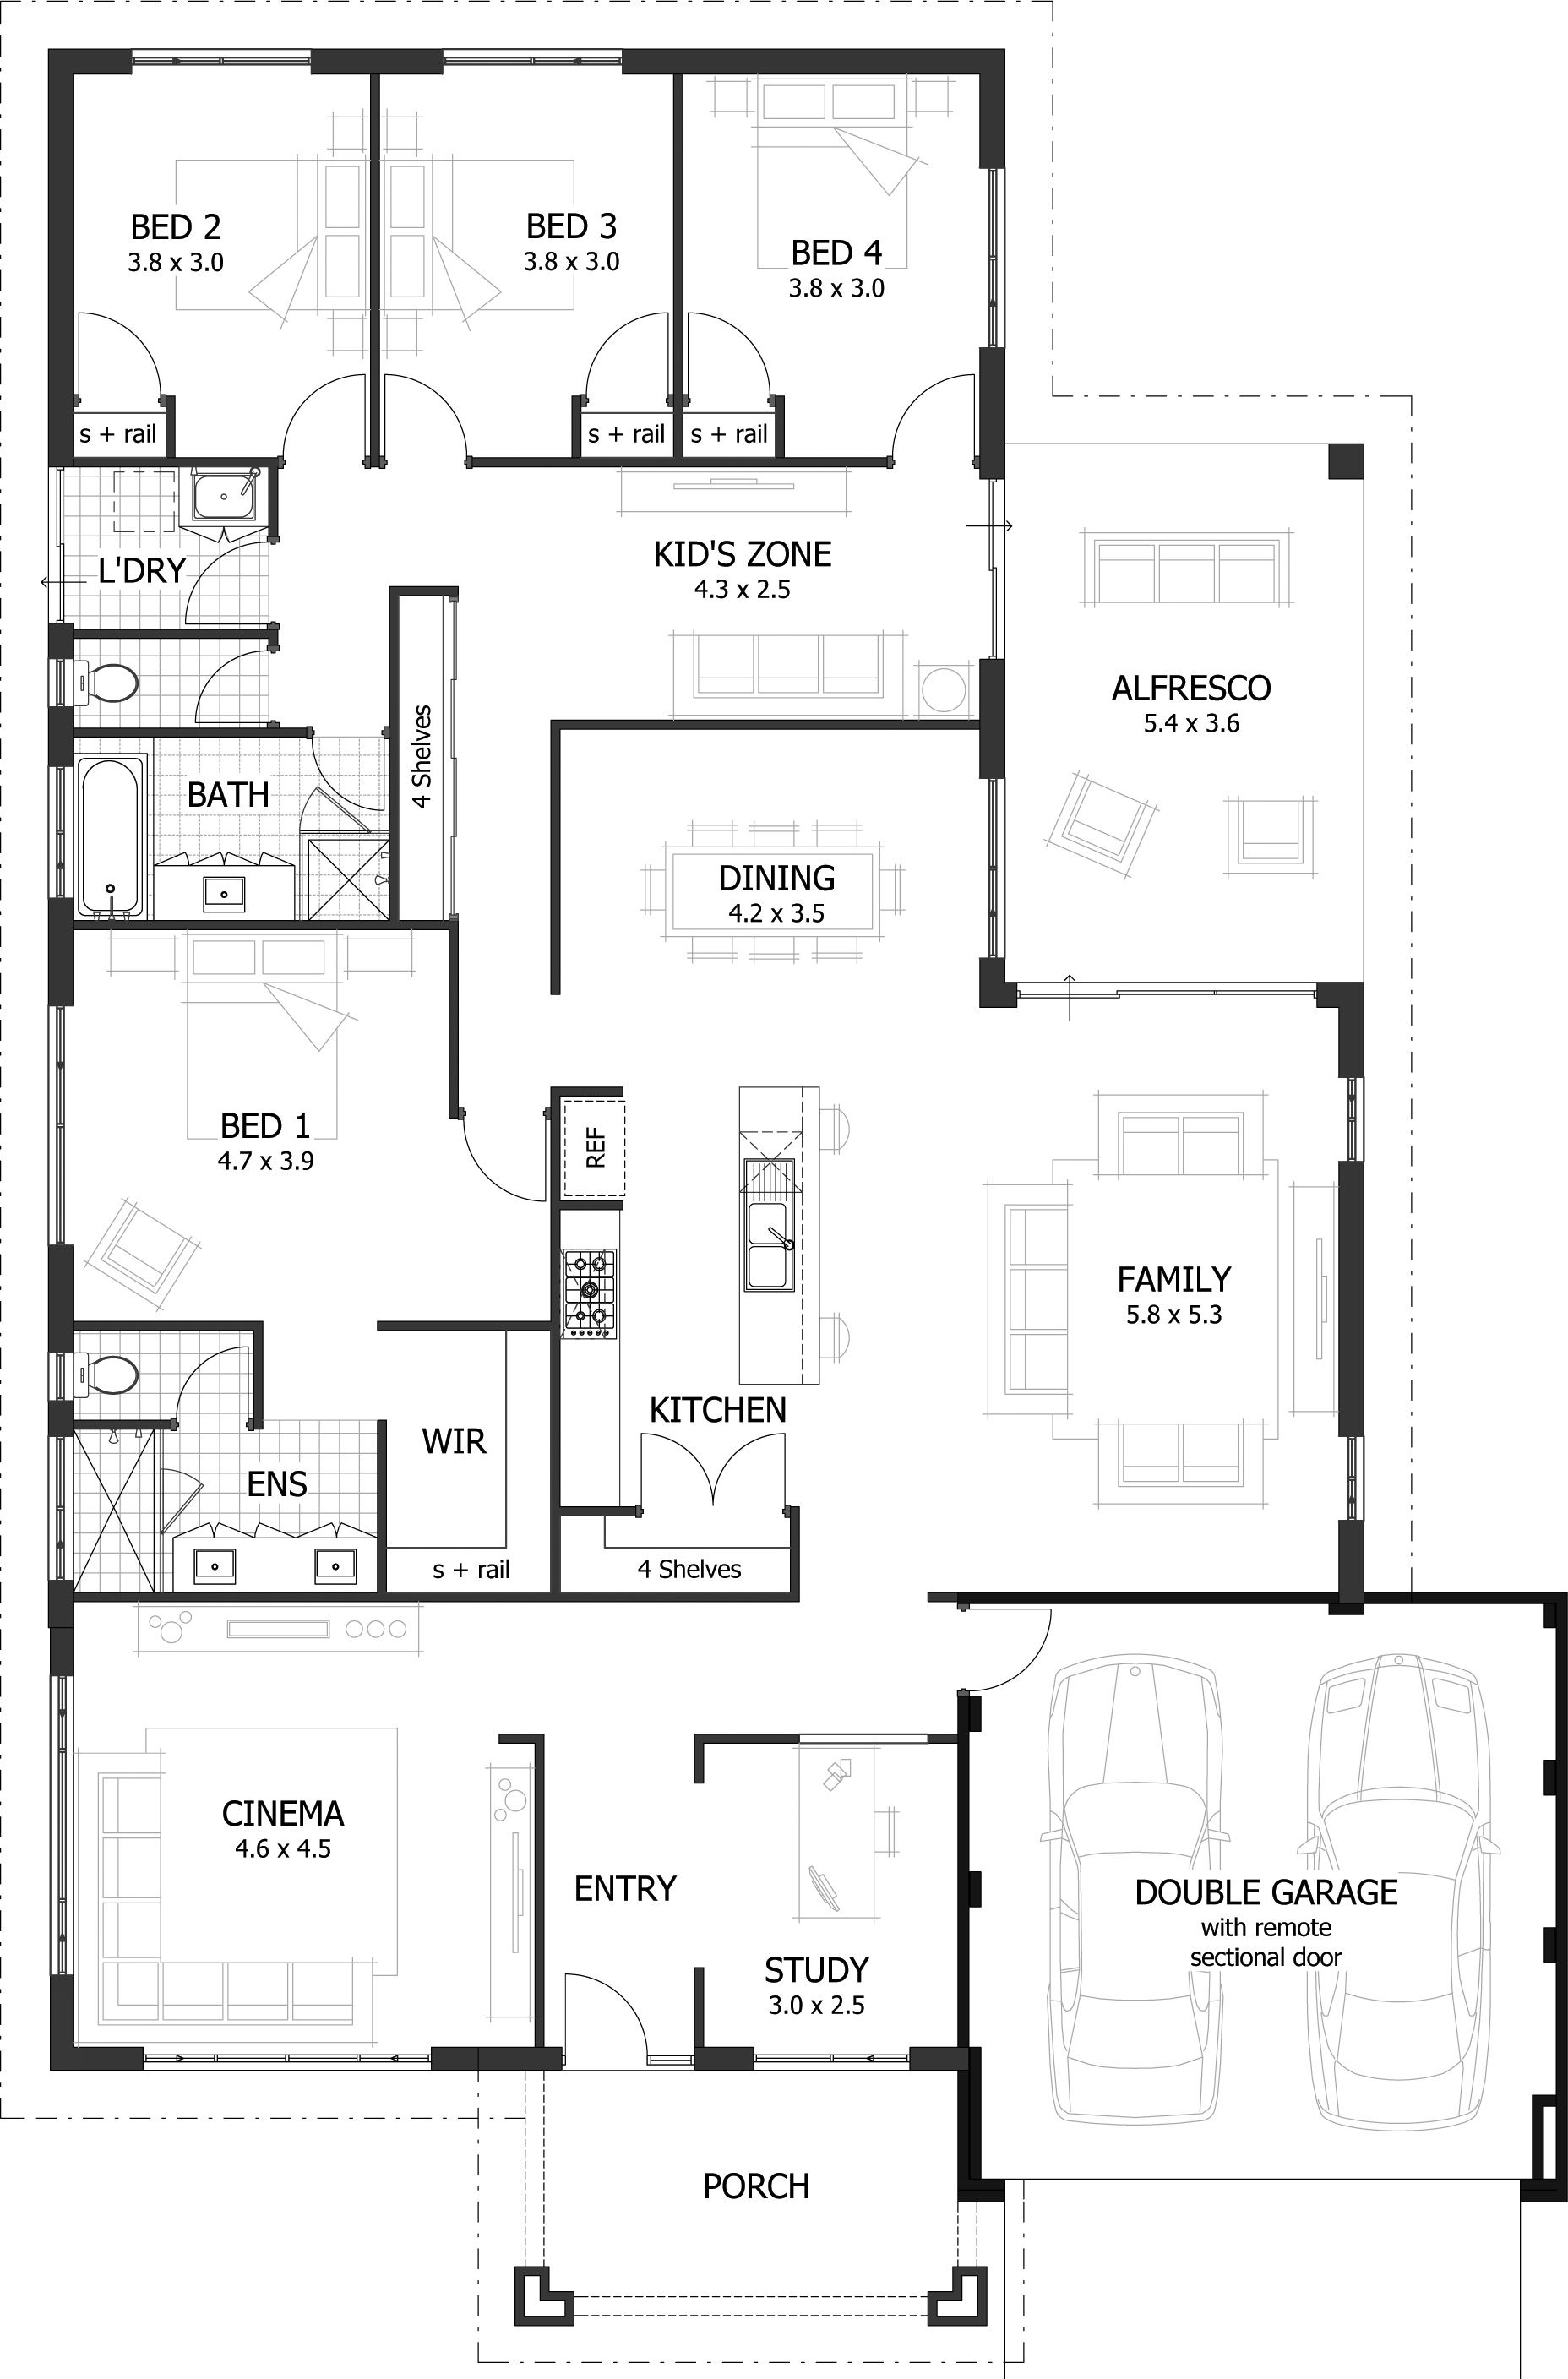 4 bedroom house plans home designs celebration homes for Single story 4 bedroom modern house plans